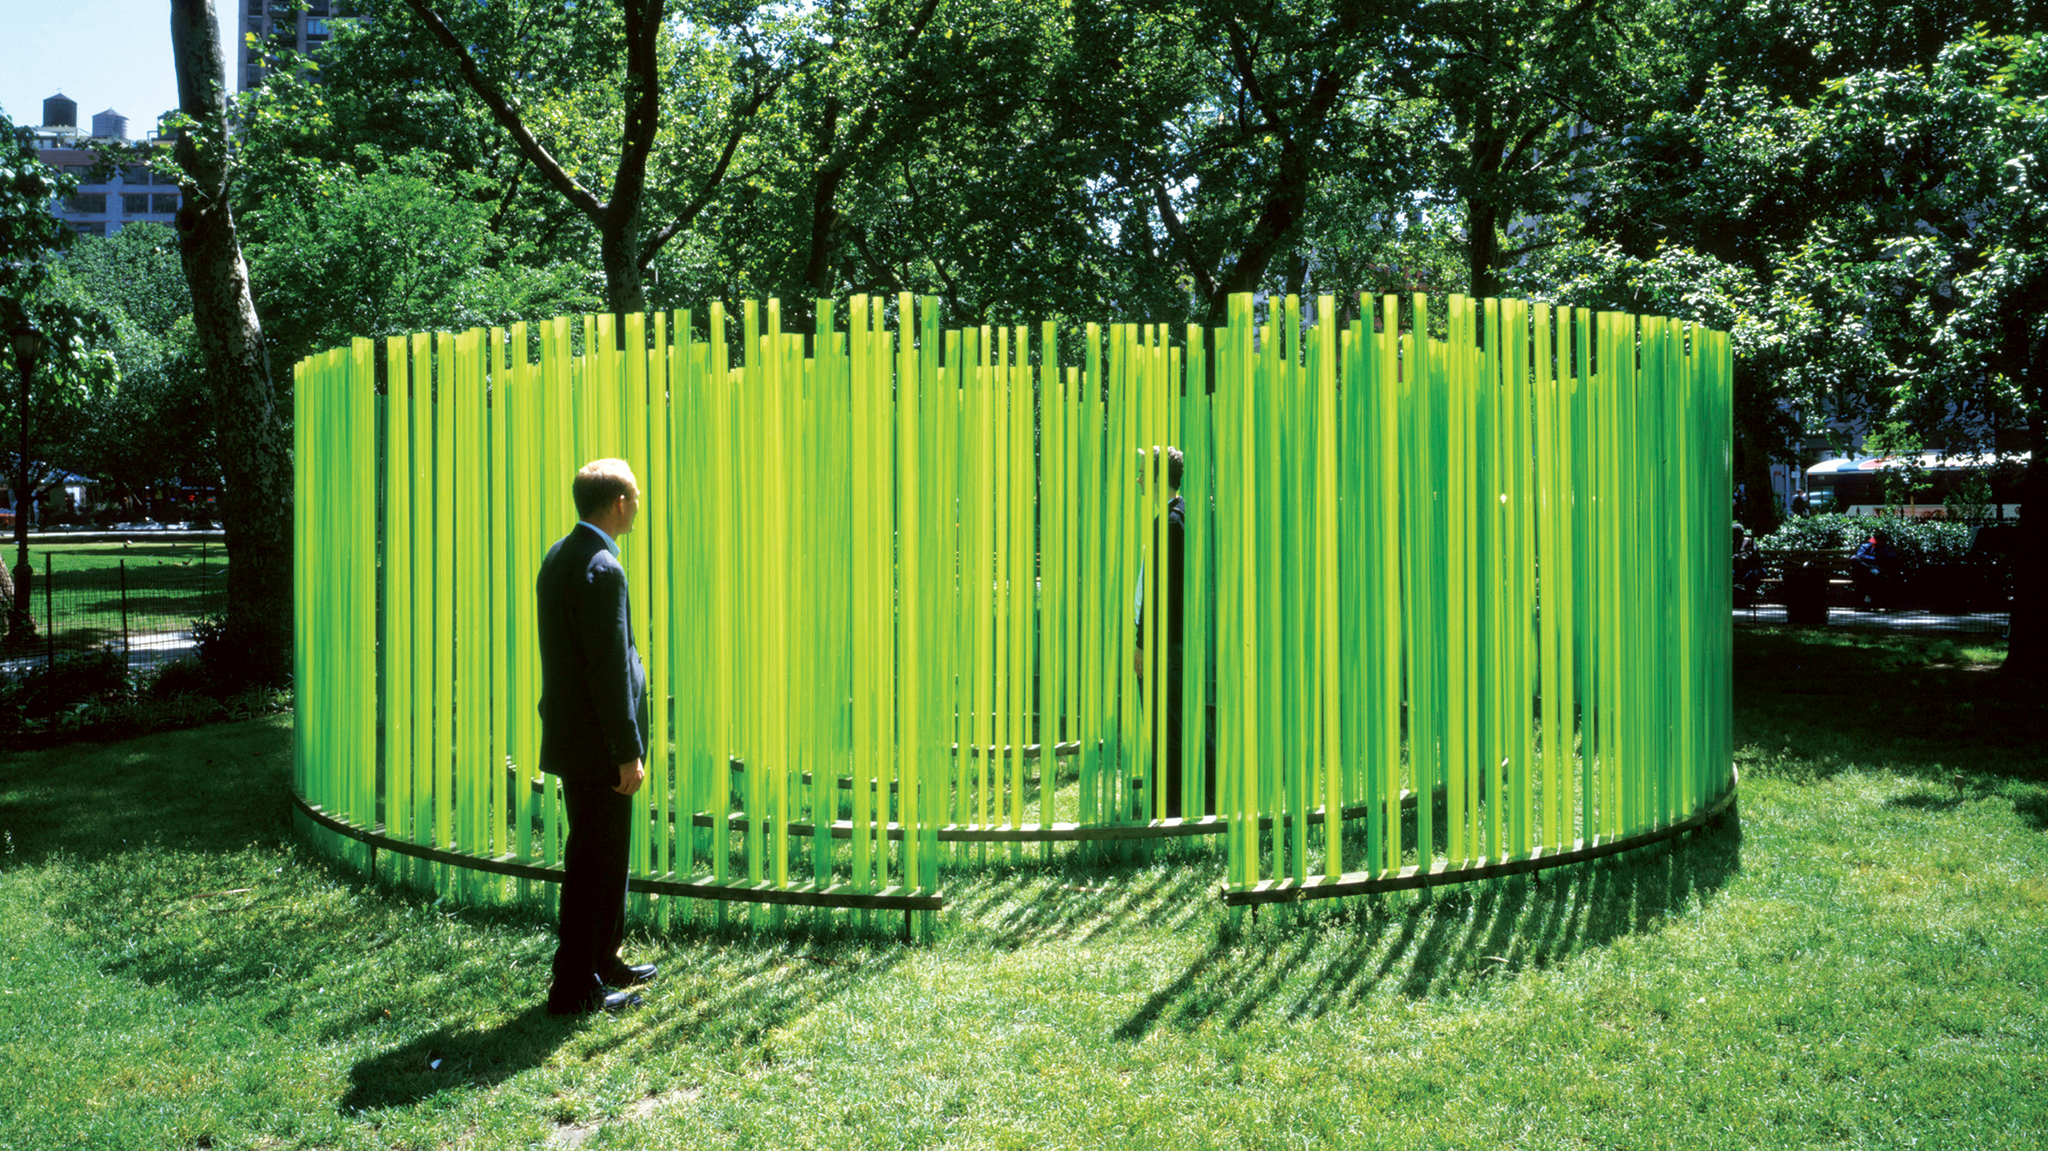 Teresita Fernández, Bamboo Cinema, 2001, Madison Square Park, New York, NY